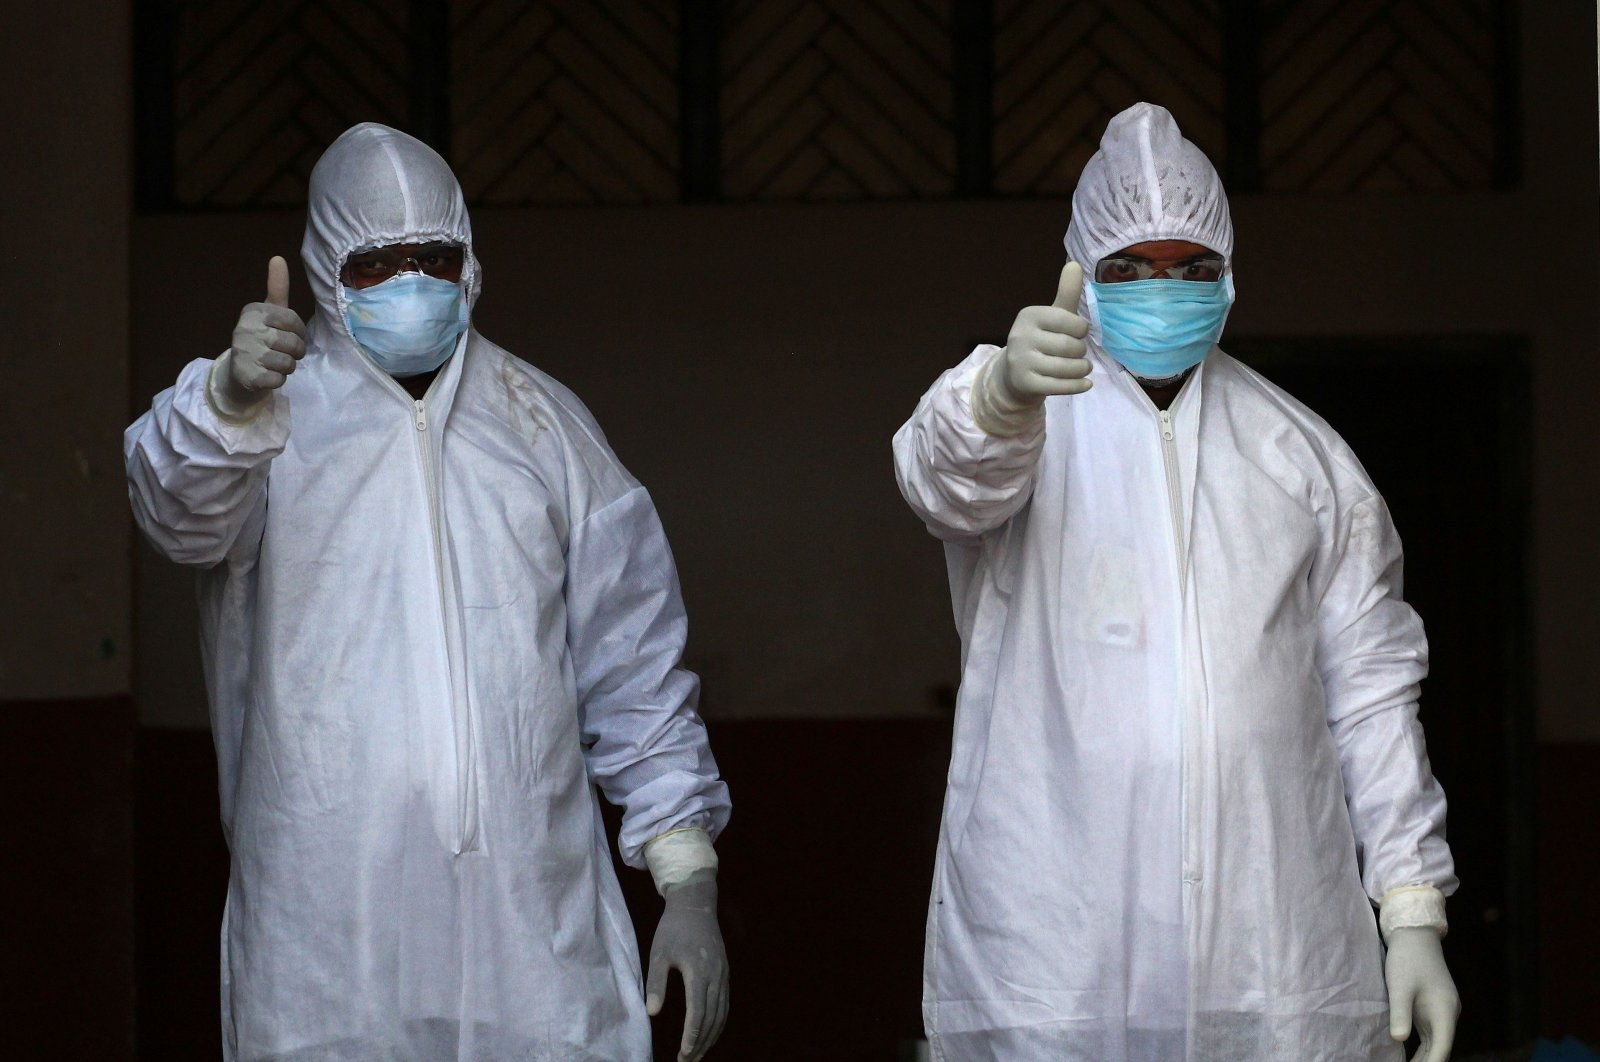 Medical staff wearing protective gear prepare to test people for COVID-19 in Allahabad, India, April 1, 2020. (AFP Photo)